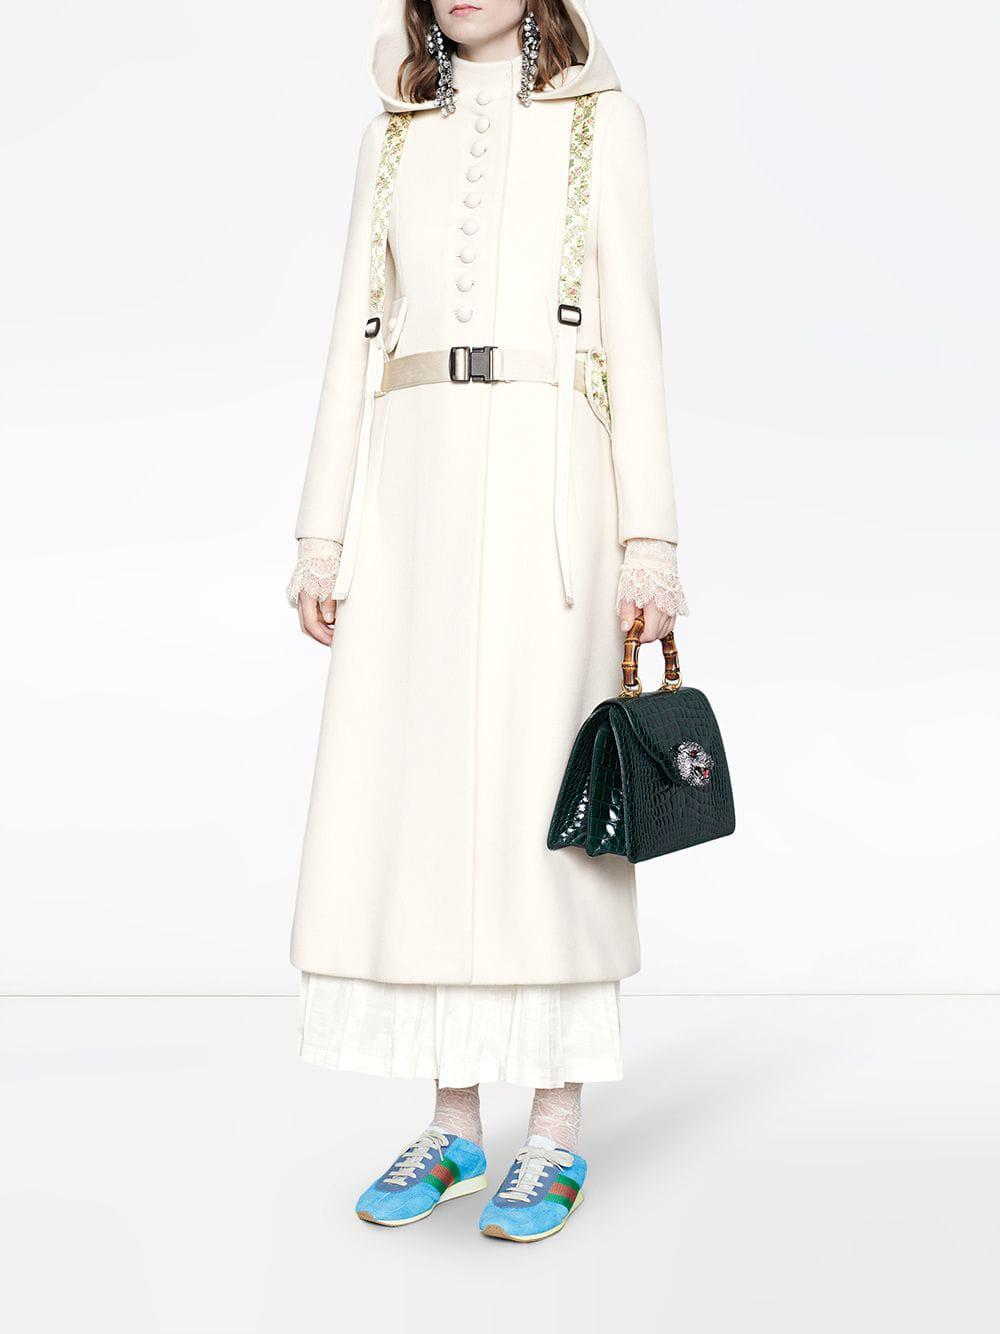 804d77b38 Gucci Wool Coat With Hood in White - Lyst